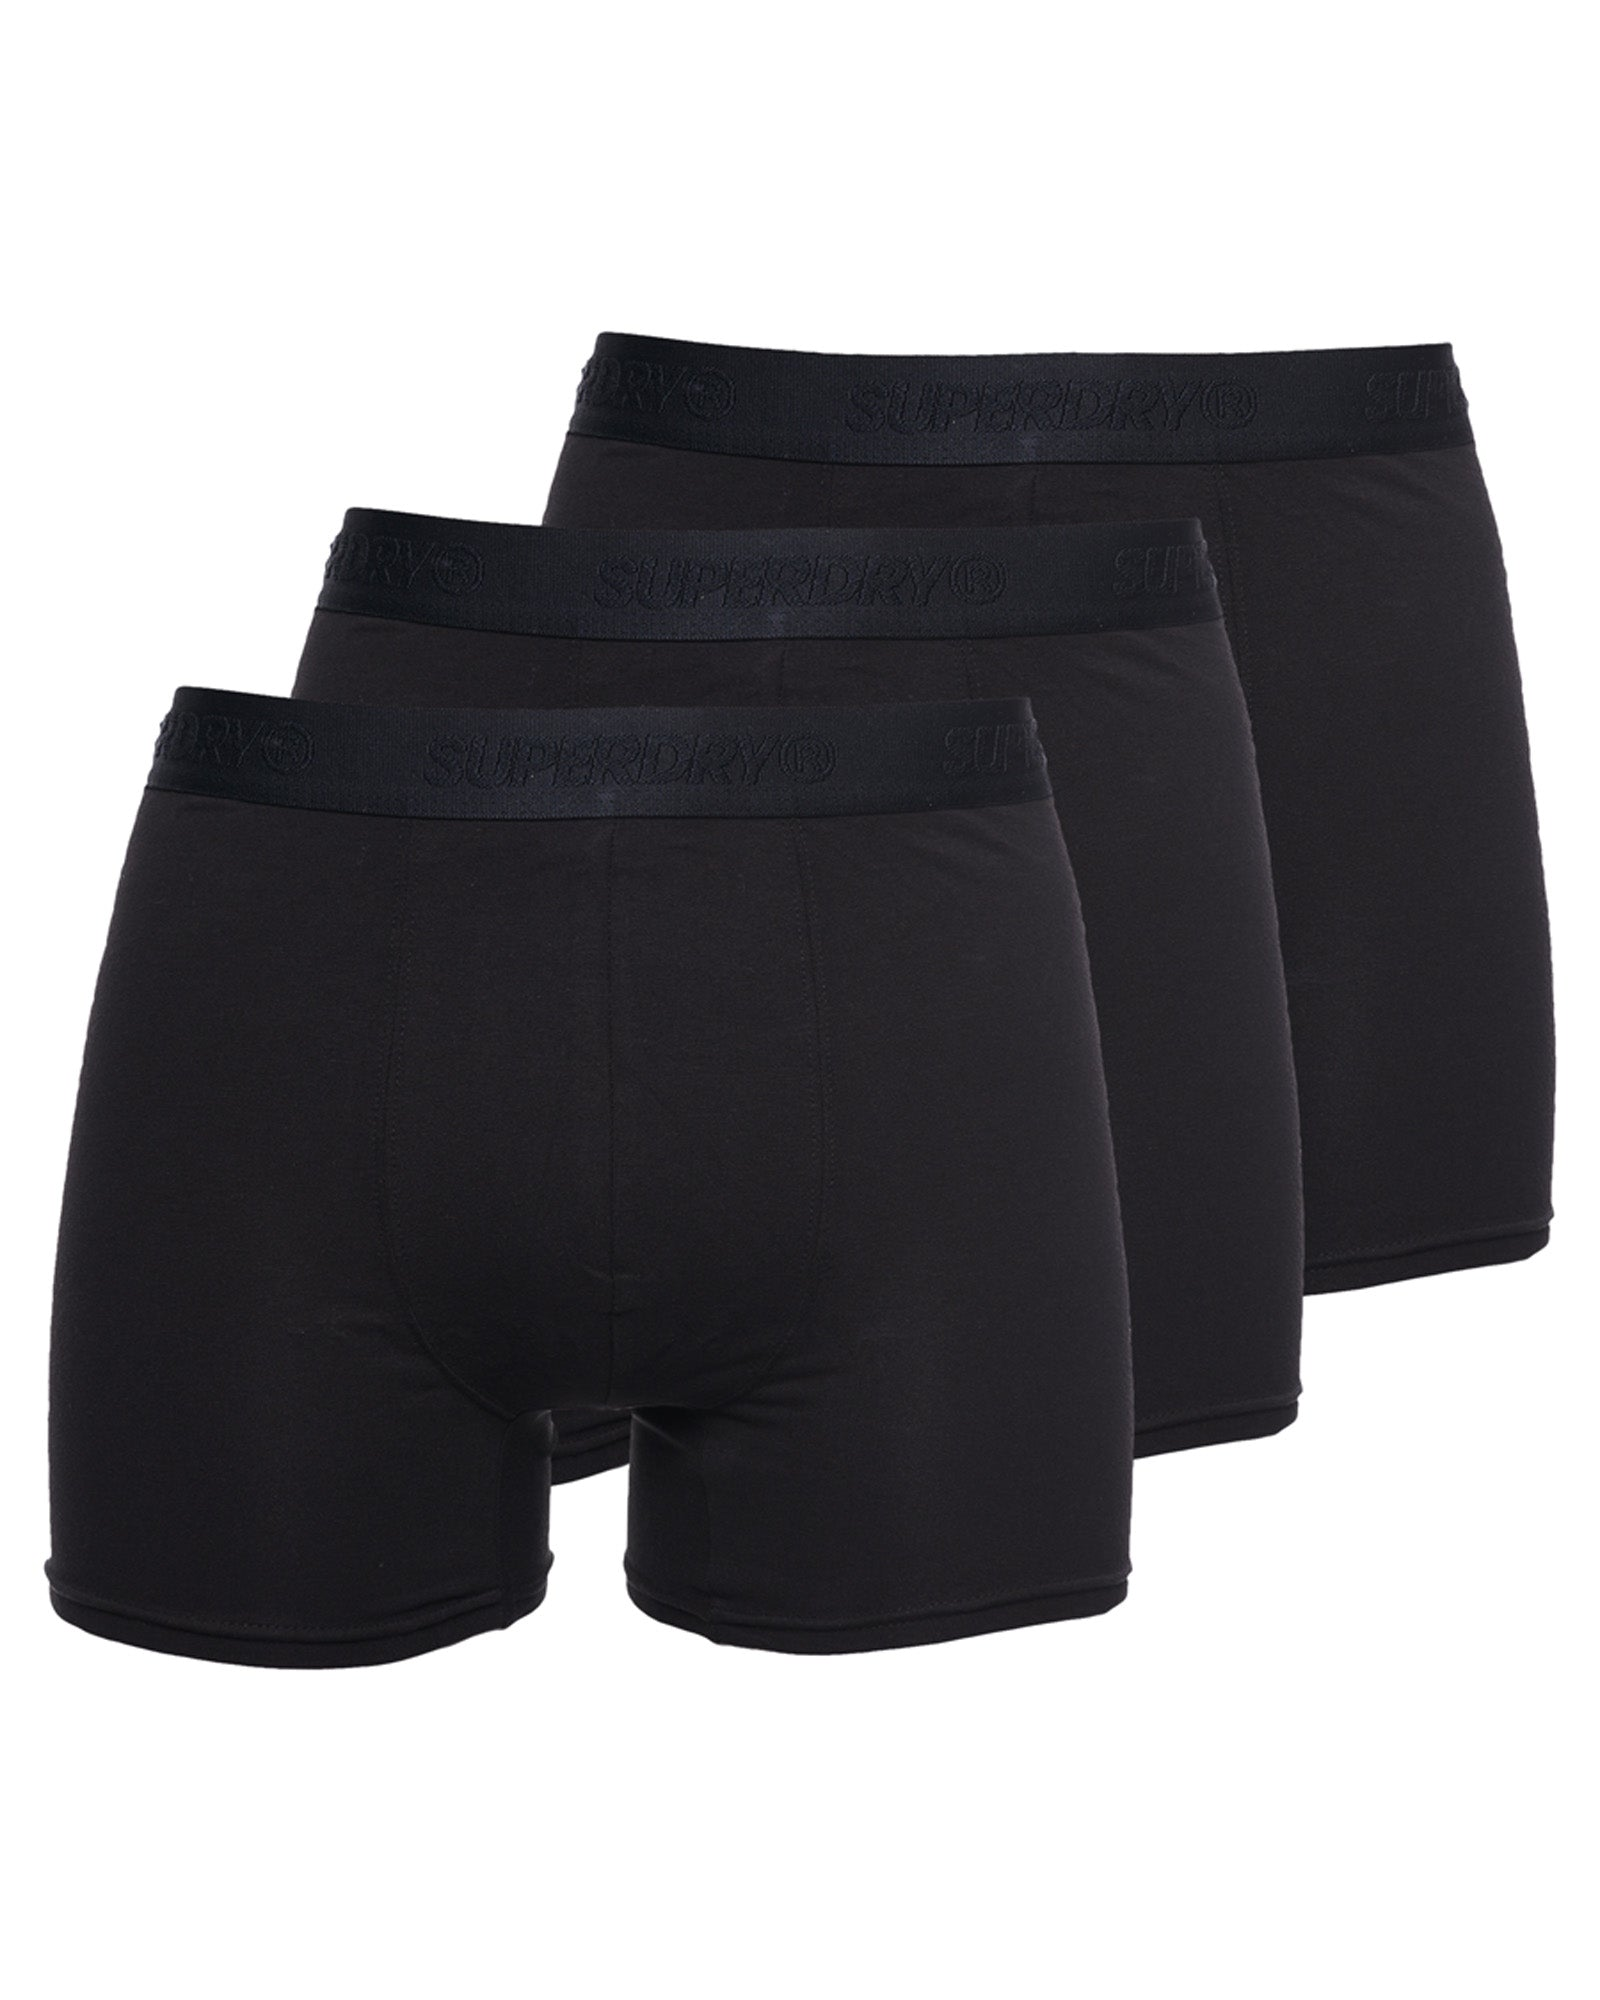 SUPERDRY CLASSIC 3 PK TRUNK